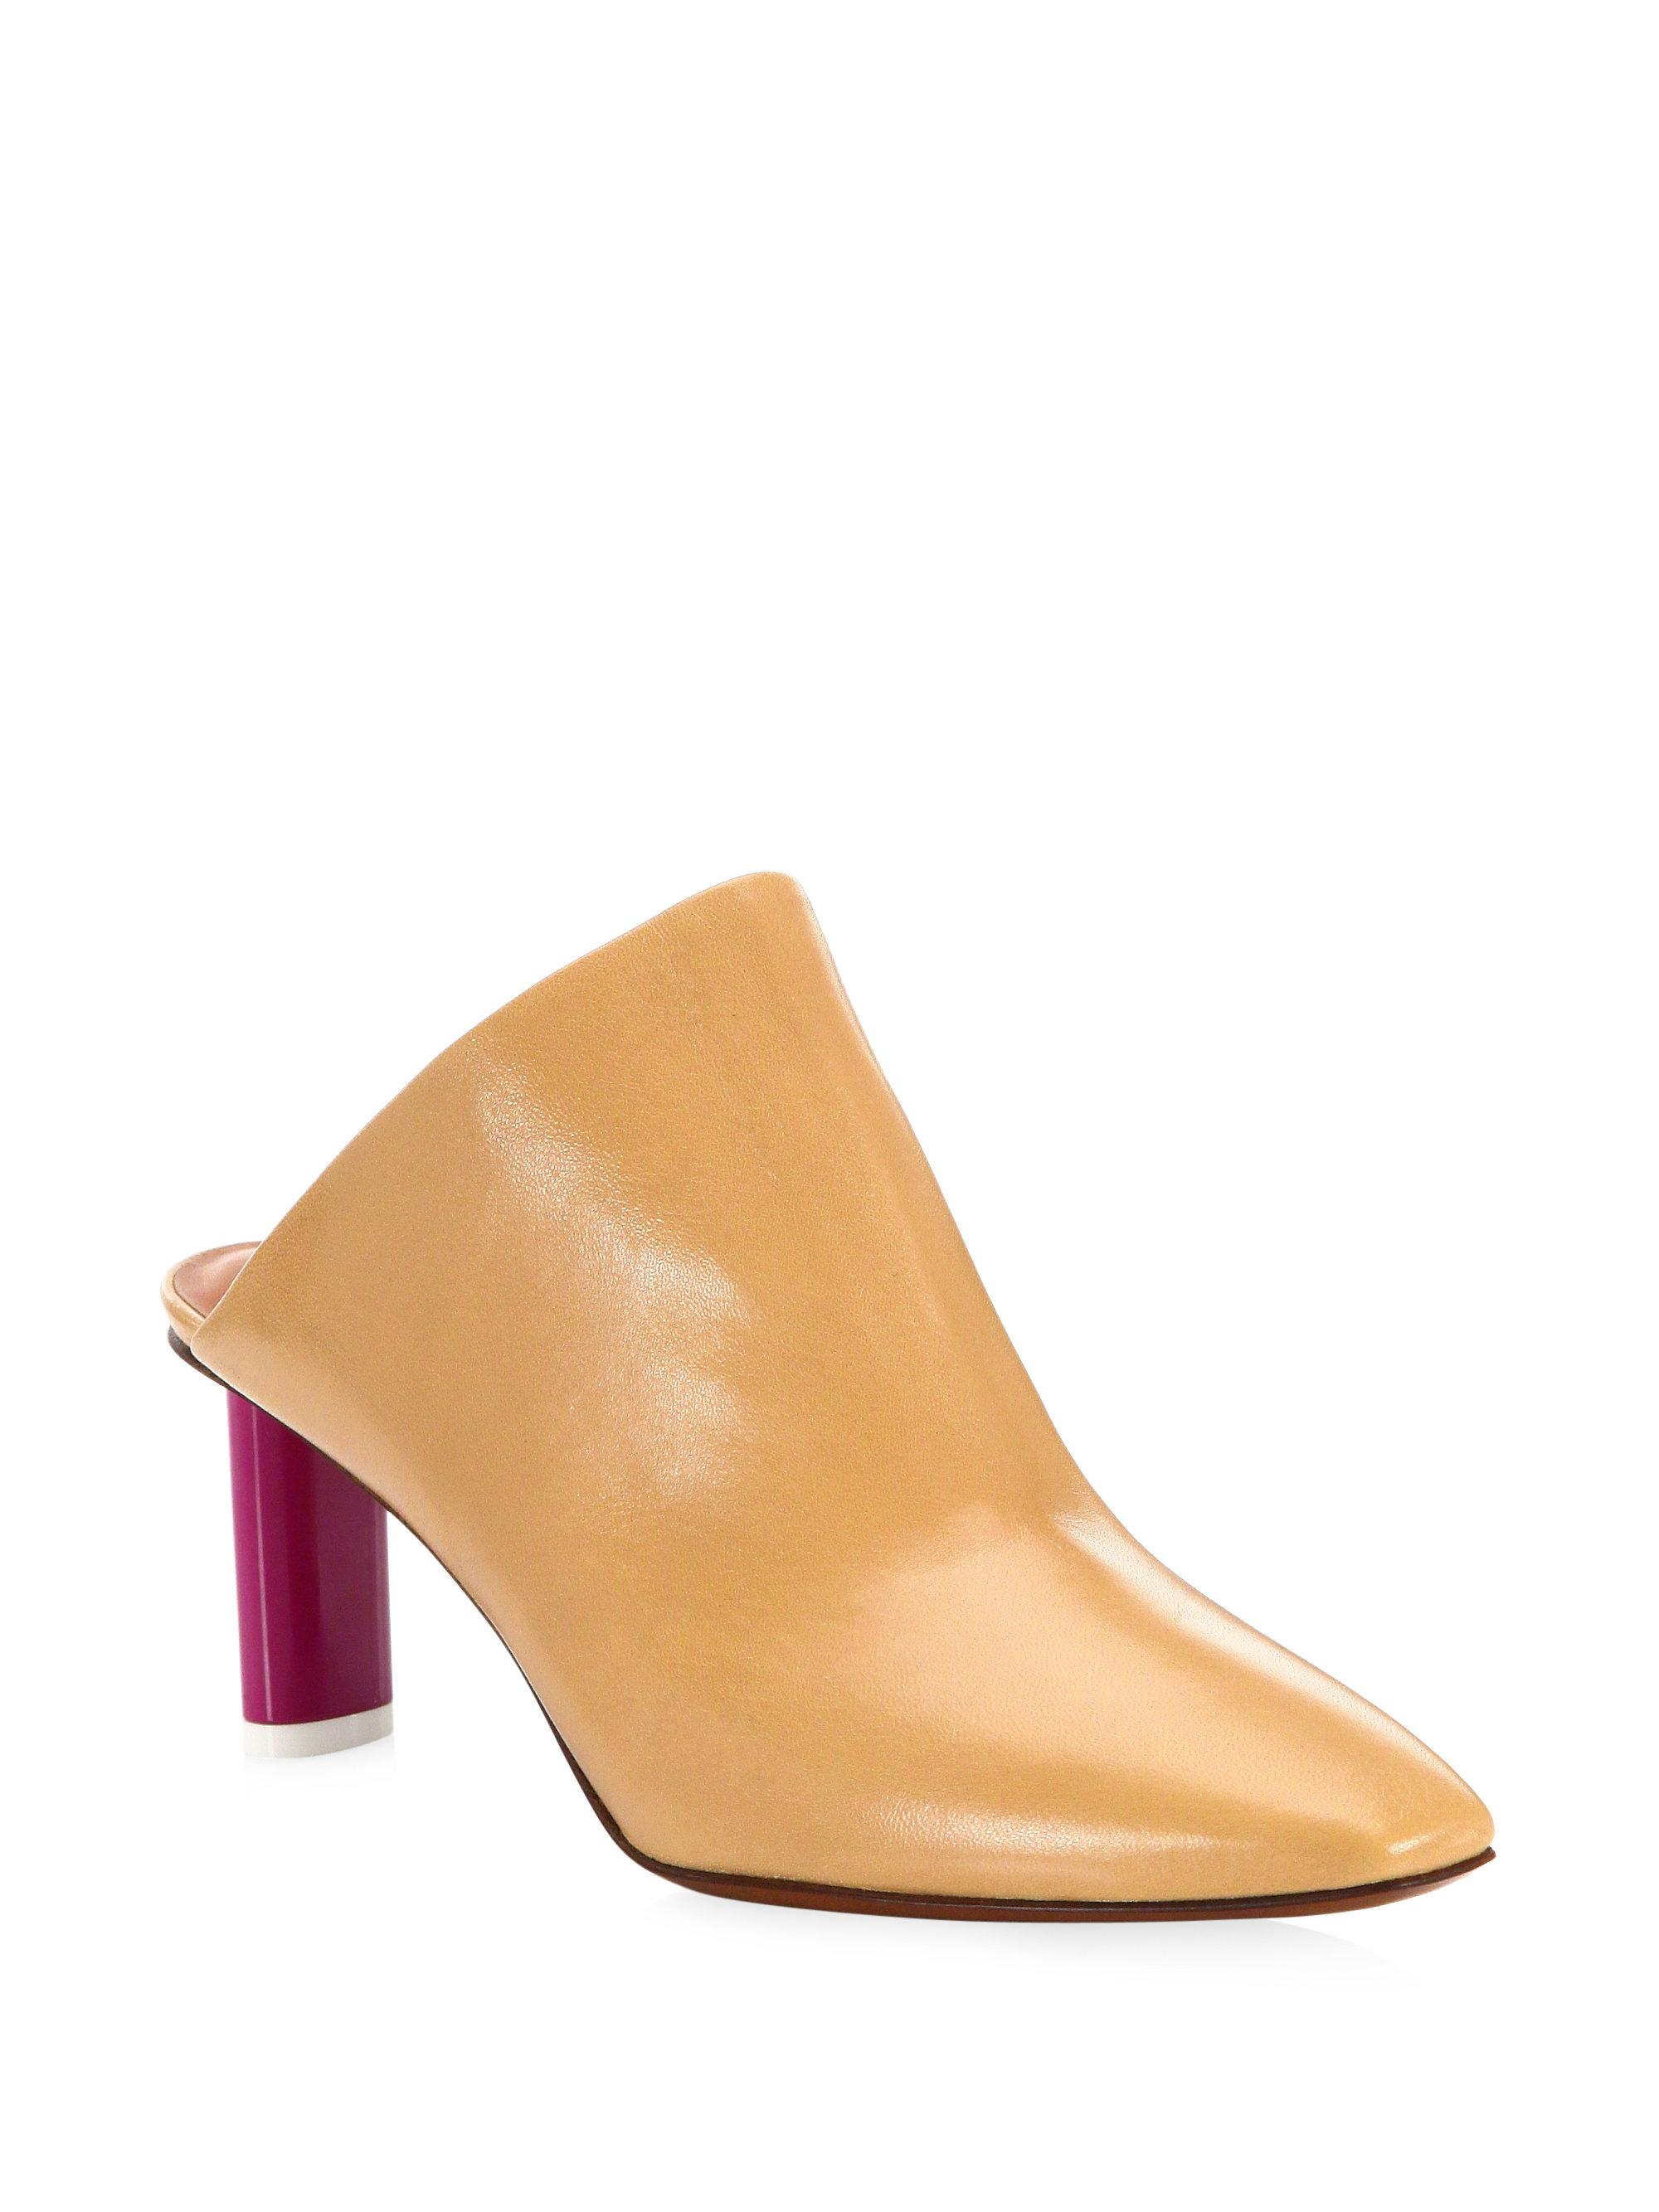 Vetements Two-Toned Leather Mules 1CXZV